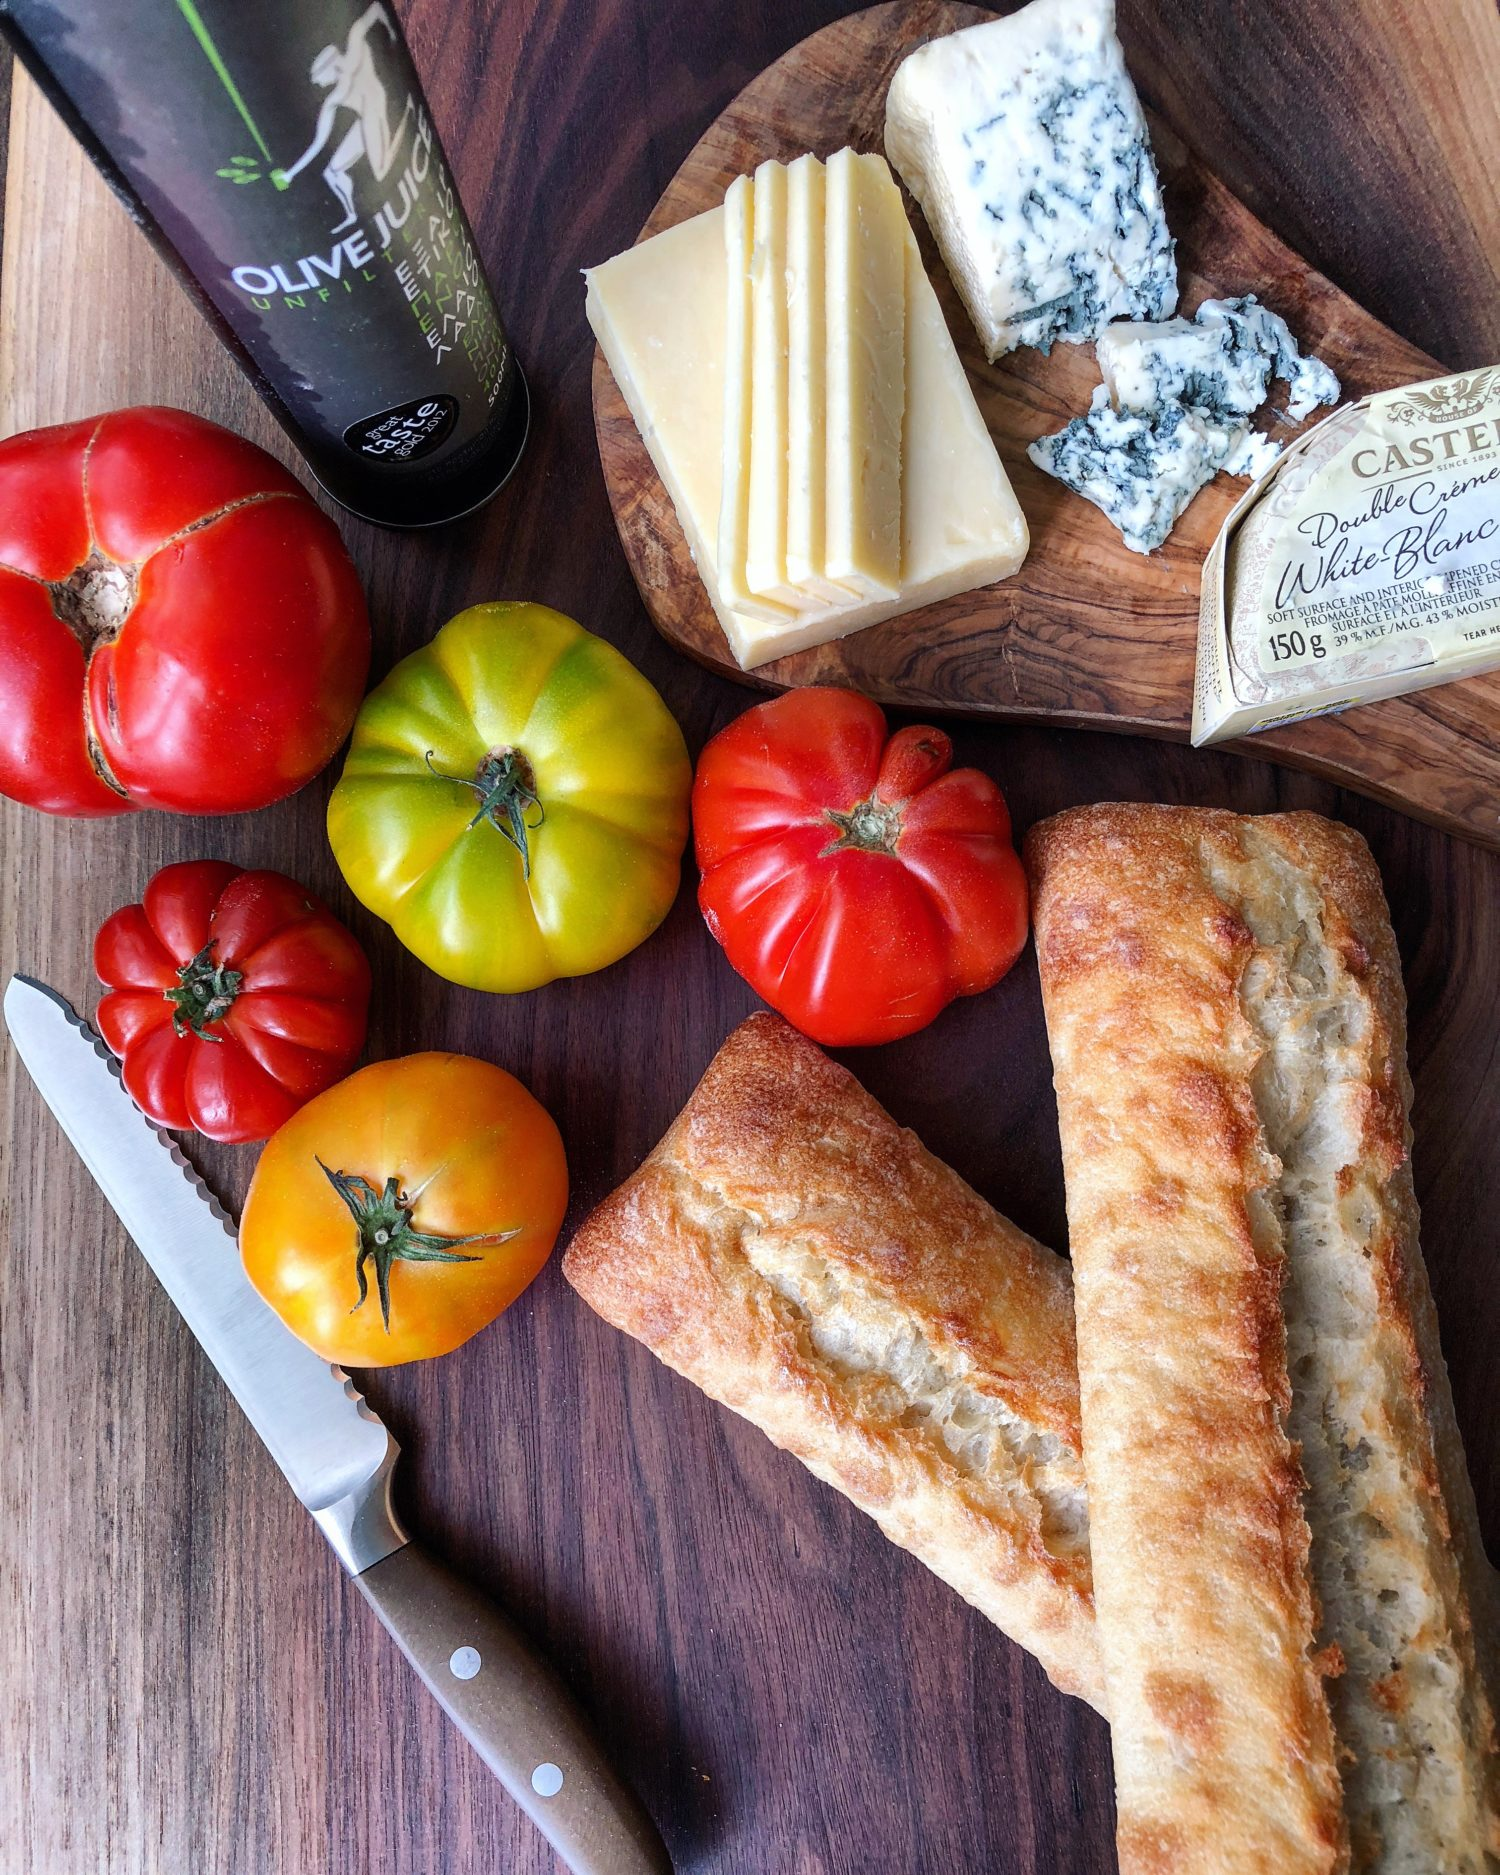 Grilled Ciabatta with olive oil and tomato, and cheeses, pan con tomate